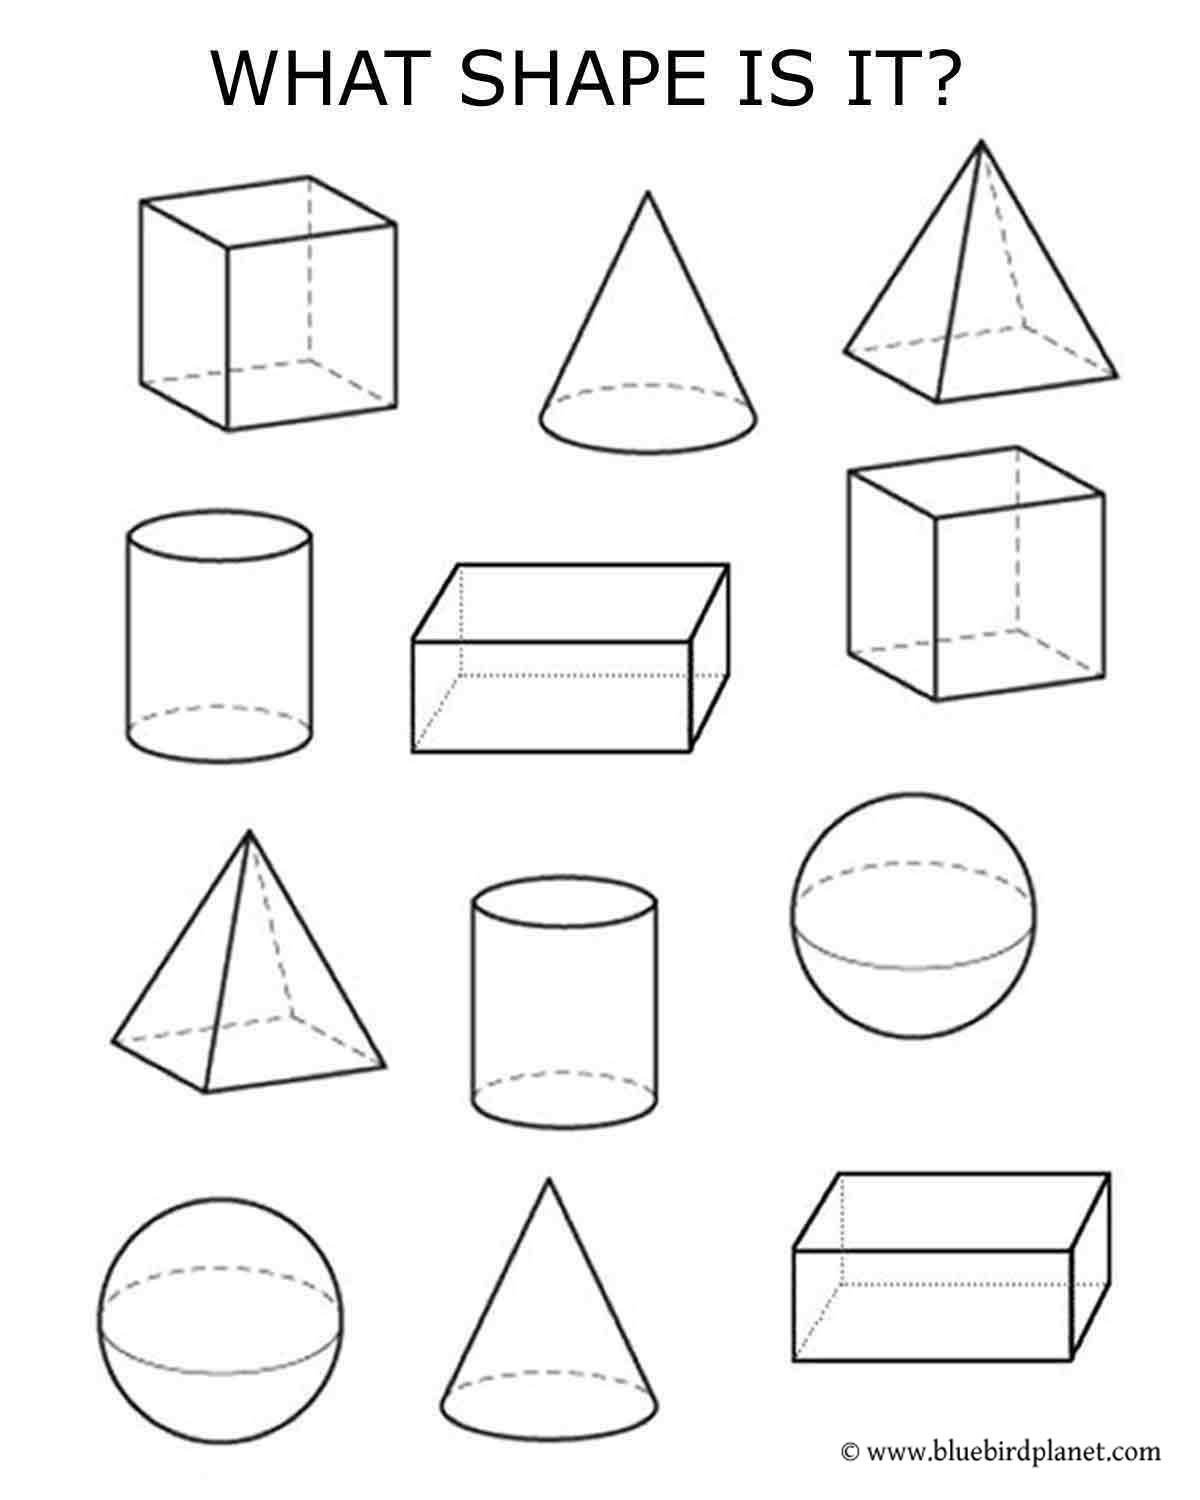 Polygon Worksheets 4th Grade Free Printables for Kids